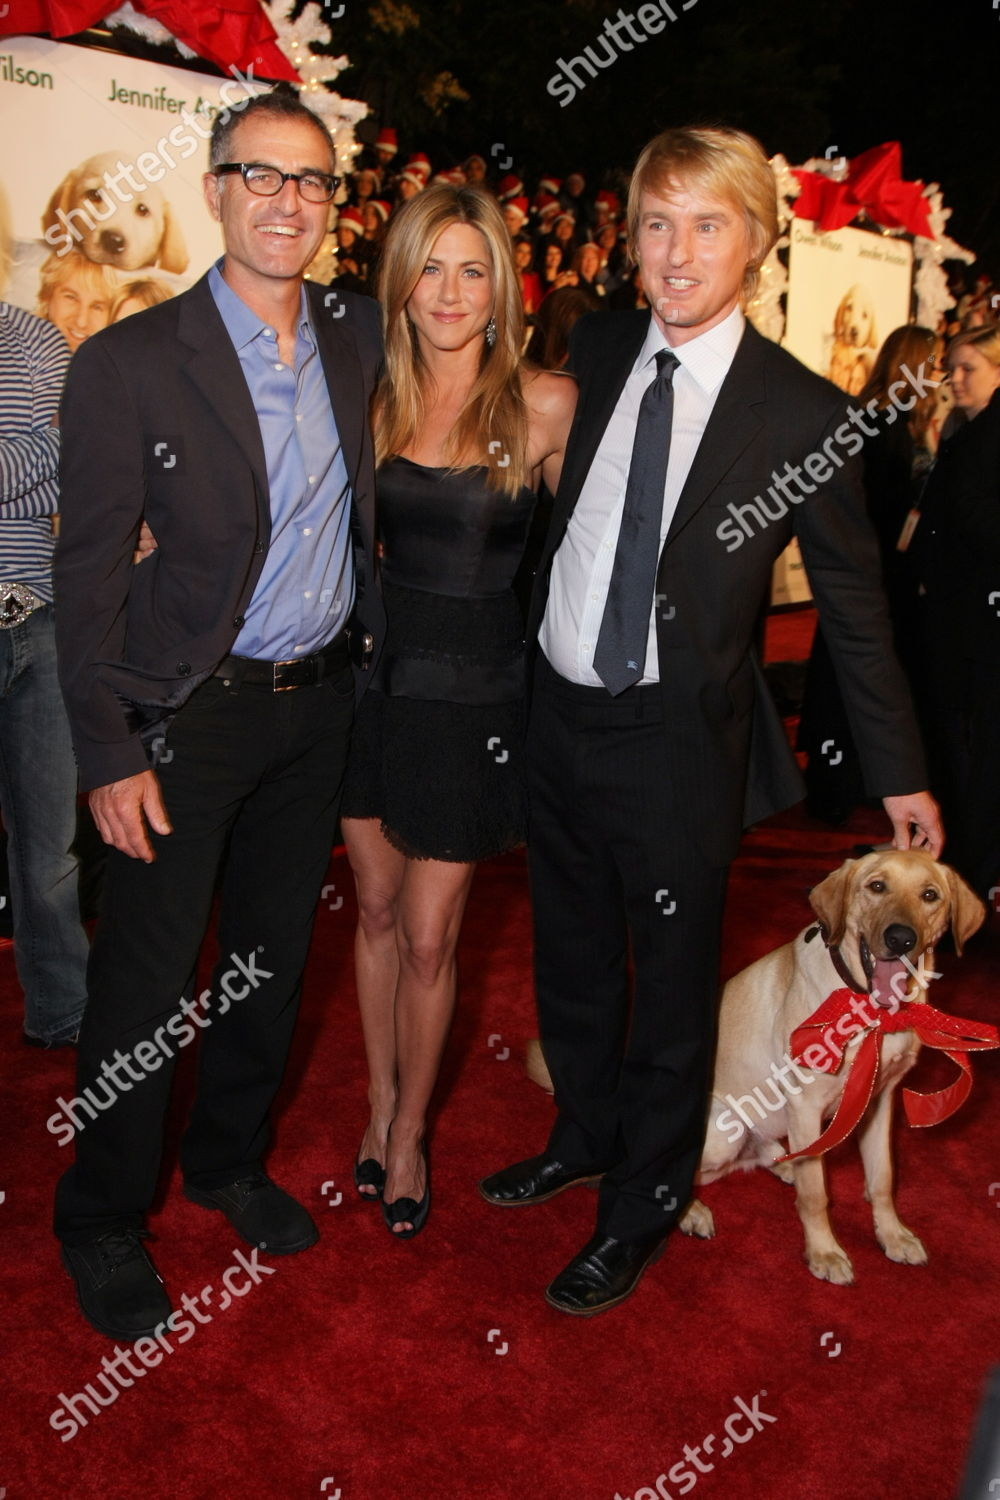 20th Century Fox Presents 'Marley And Me' Premiere Westwood Los Angeles, America.: стоковое фото